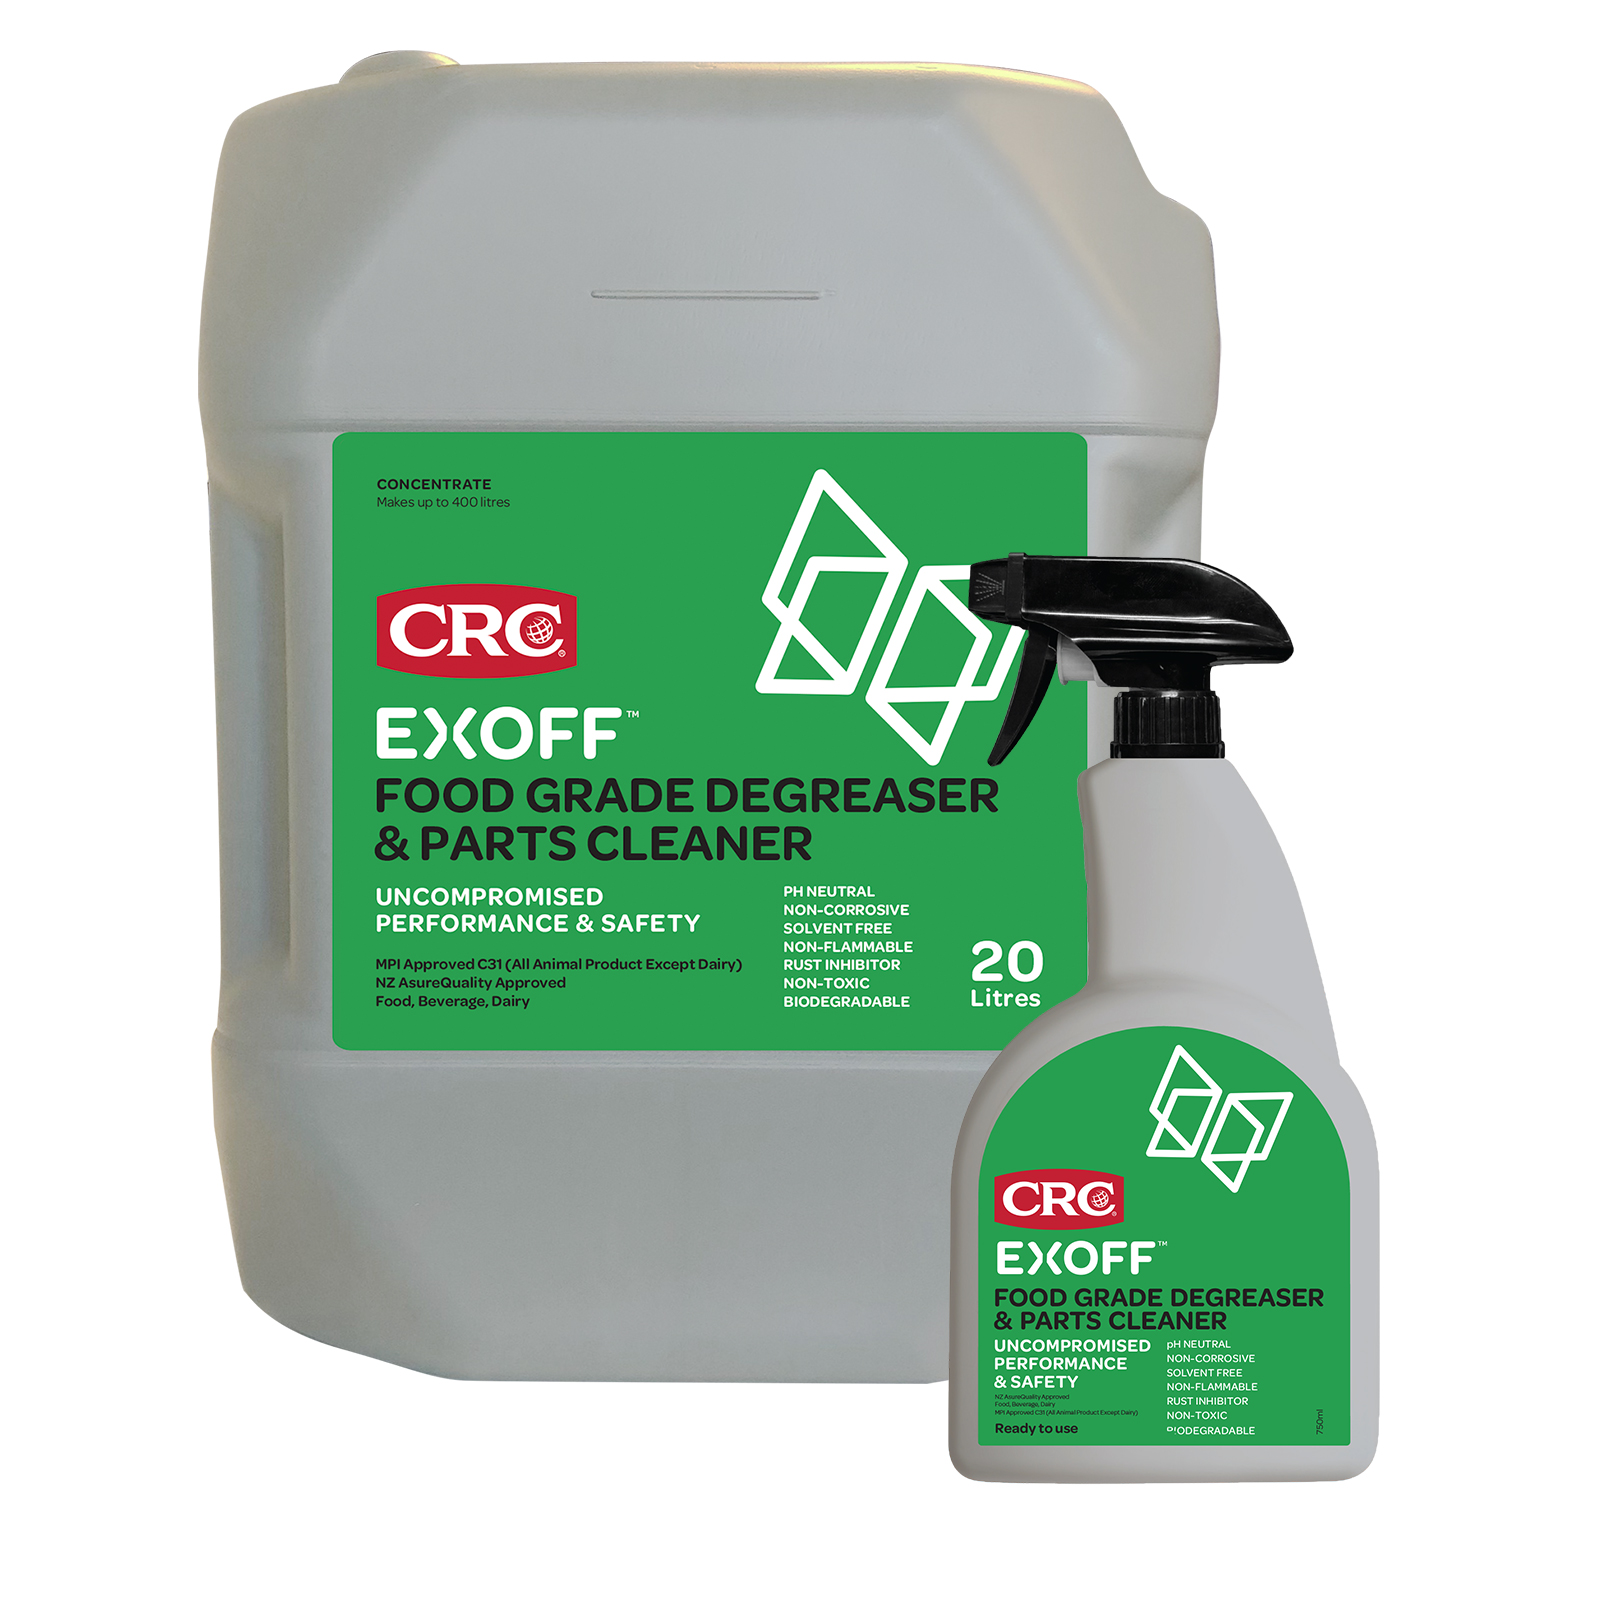 Food Grade Cleaner | Exoff Food Grade Degreaser and Parts